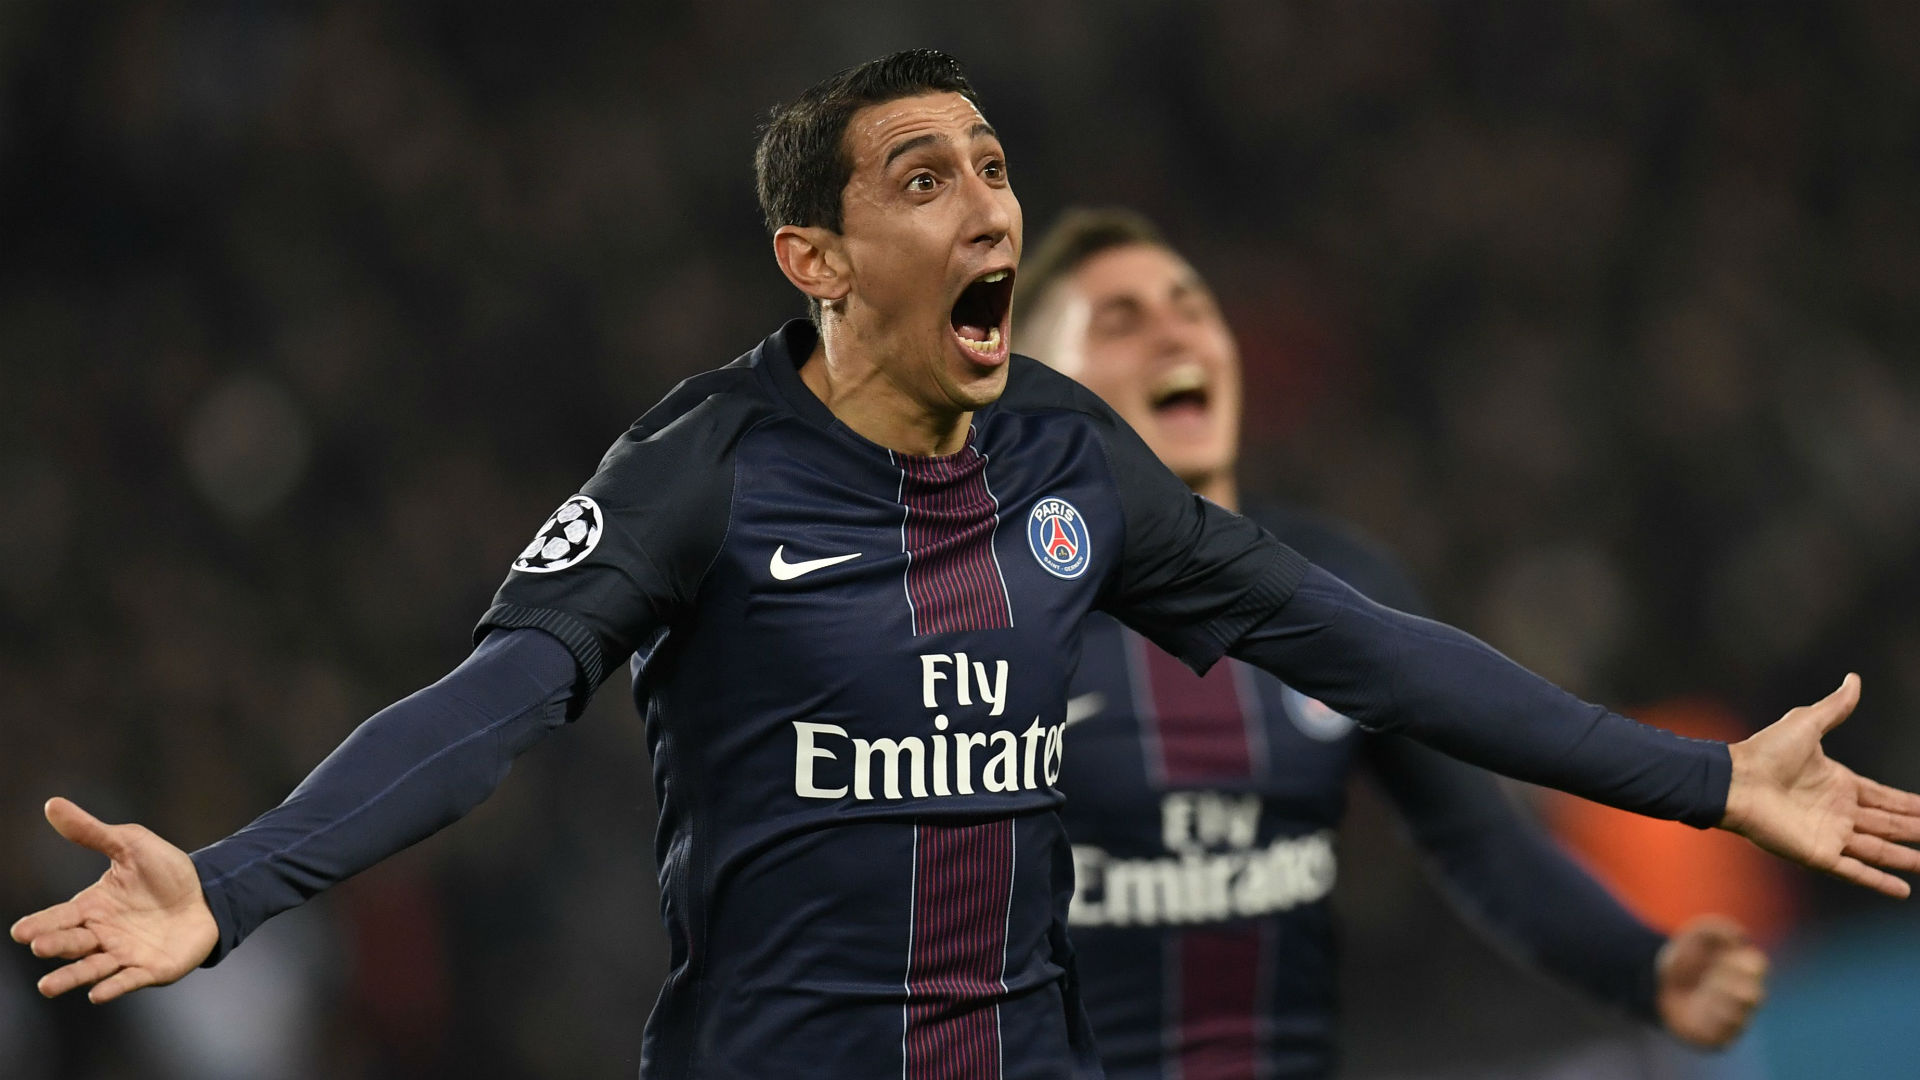 Angel Di Maria Paris SG FC Barcelona UEFA Champions League 14022017